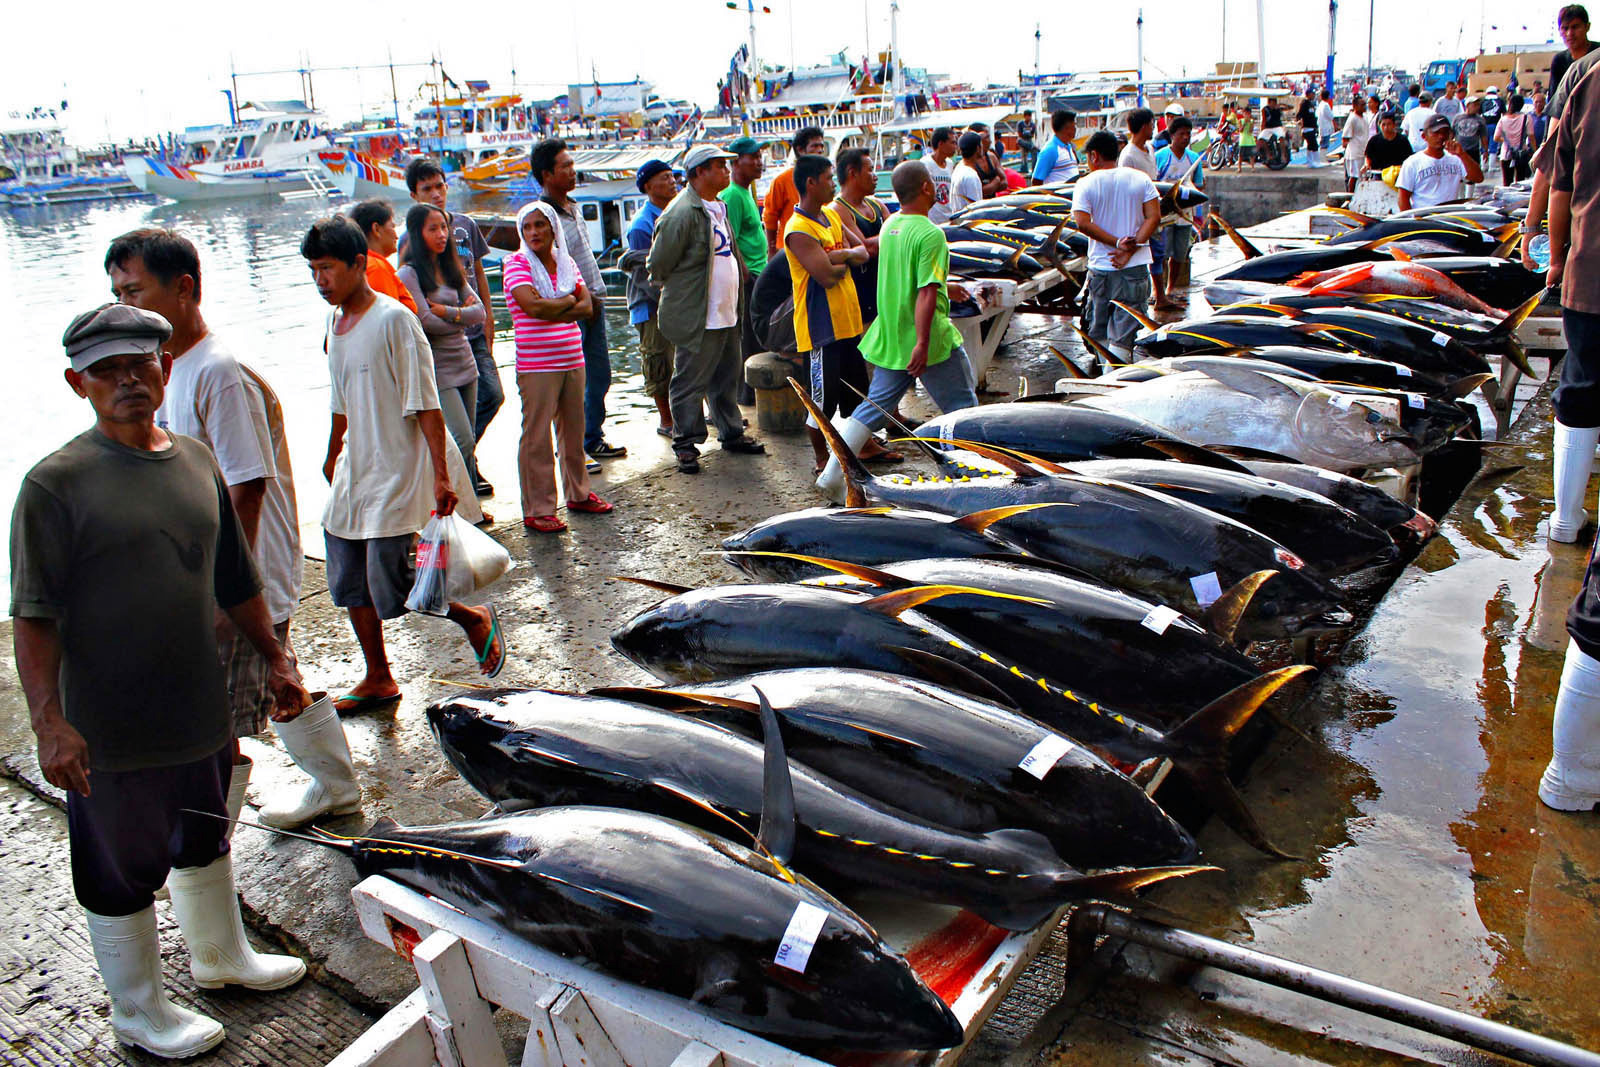 Tuna fish are lined up for weighing before they are sold to buyers at the Fish Port Complex in Barangay Tambler, General Santos City last Nov. 21, 2011. MindaNews photo by Erwin Mascarinas